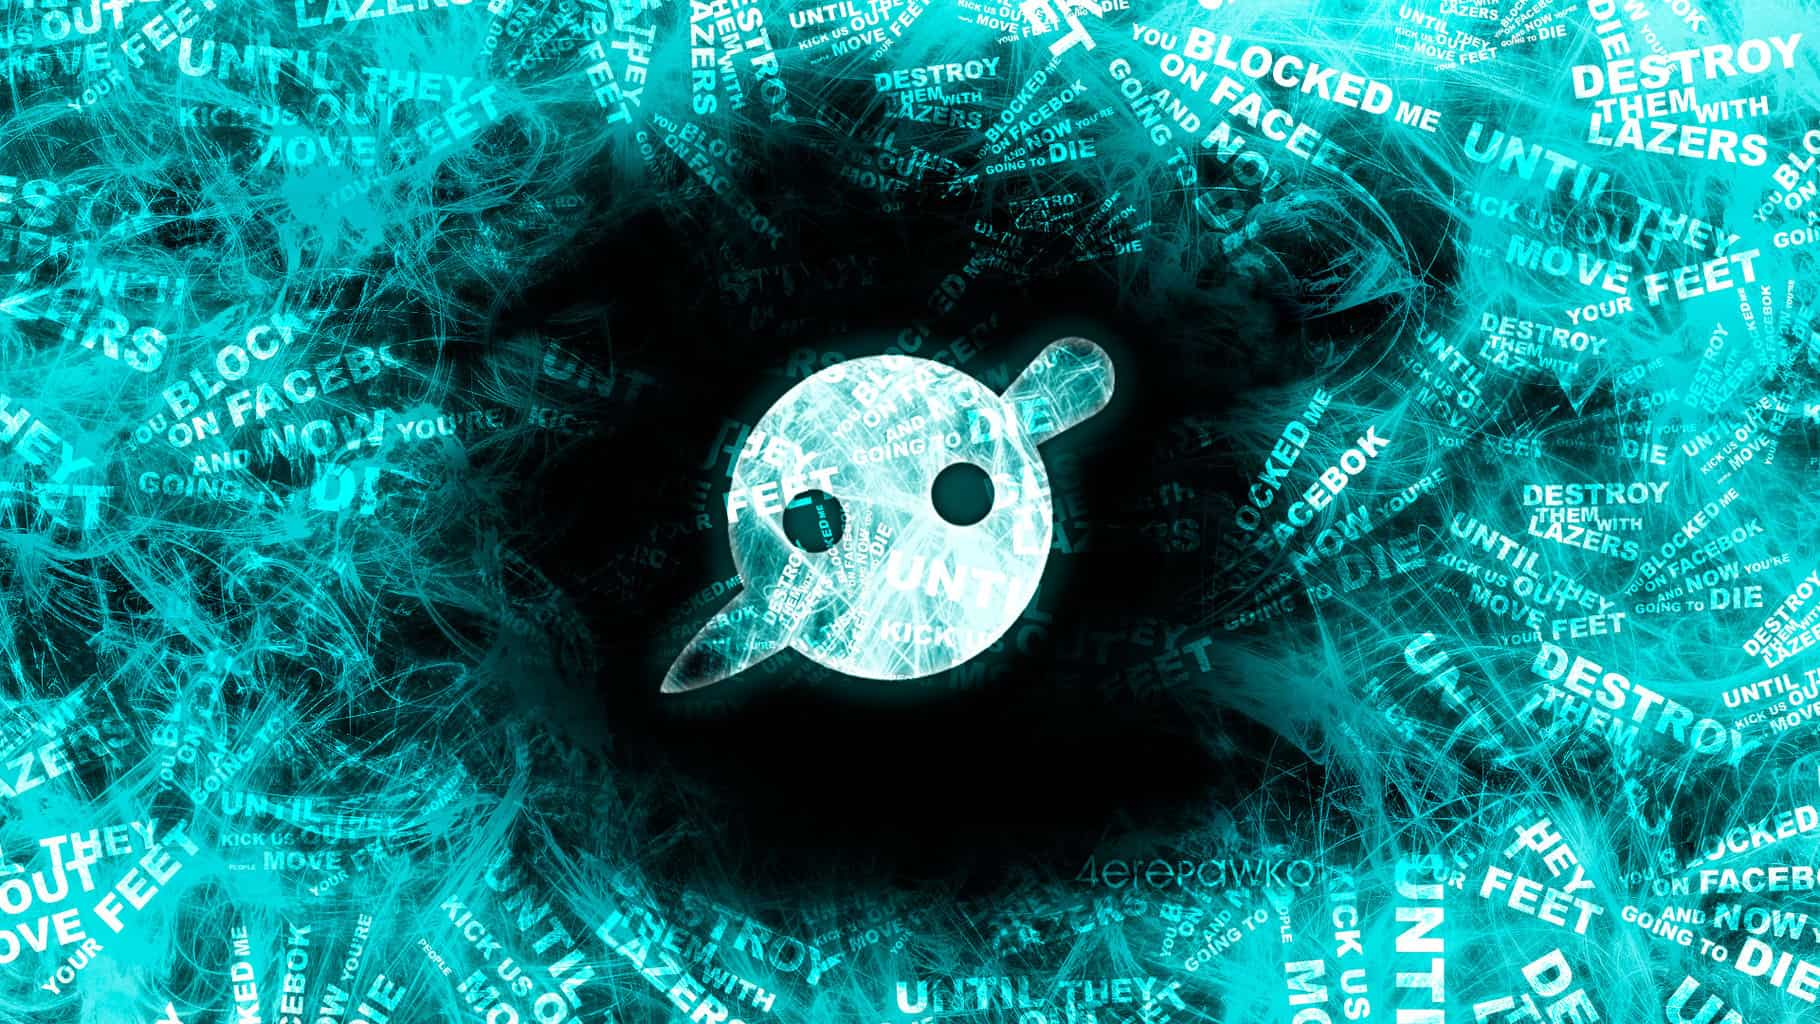 Drum Set Wallpaper Hd Knife Party Creates 478 Song Playlist On Spotify Takeover